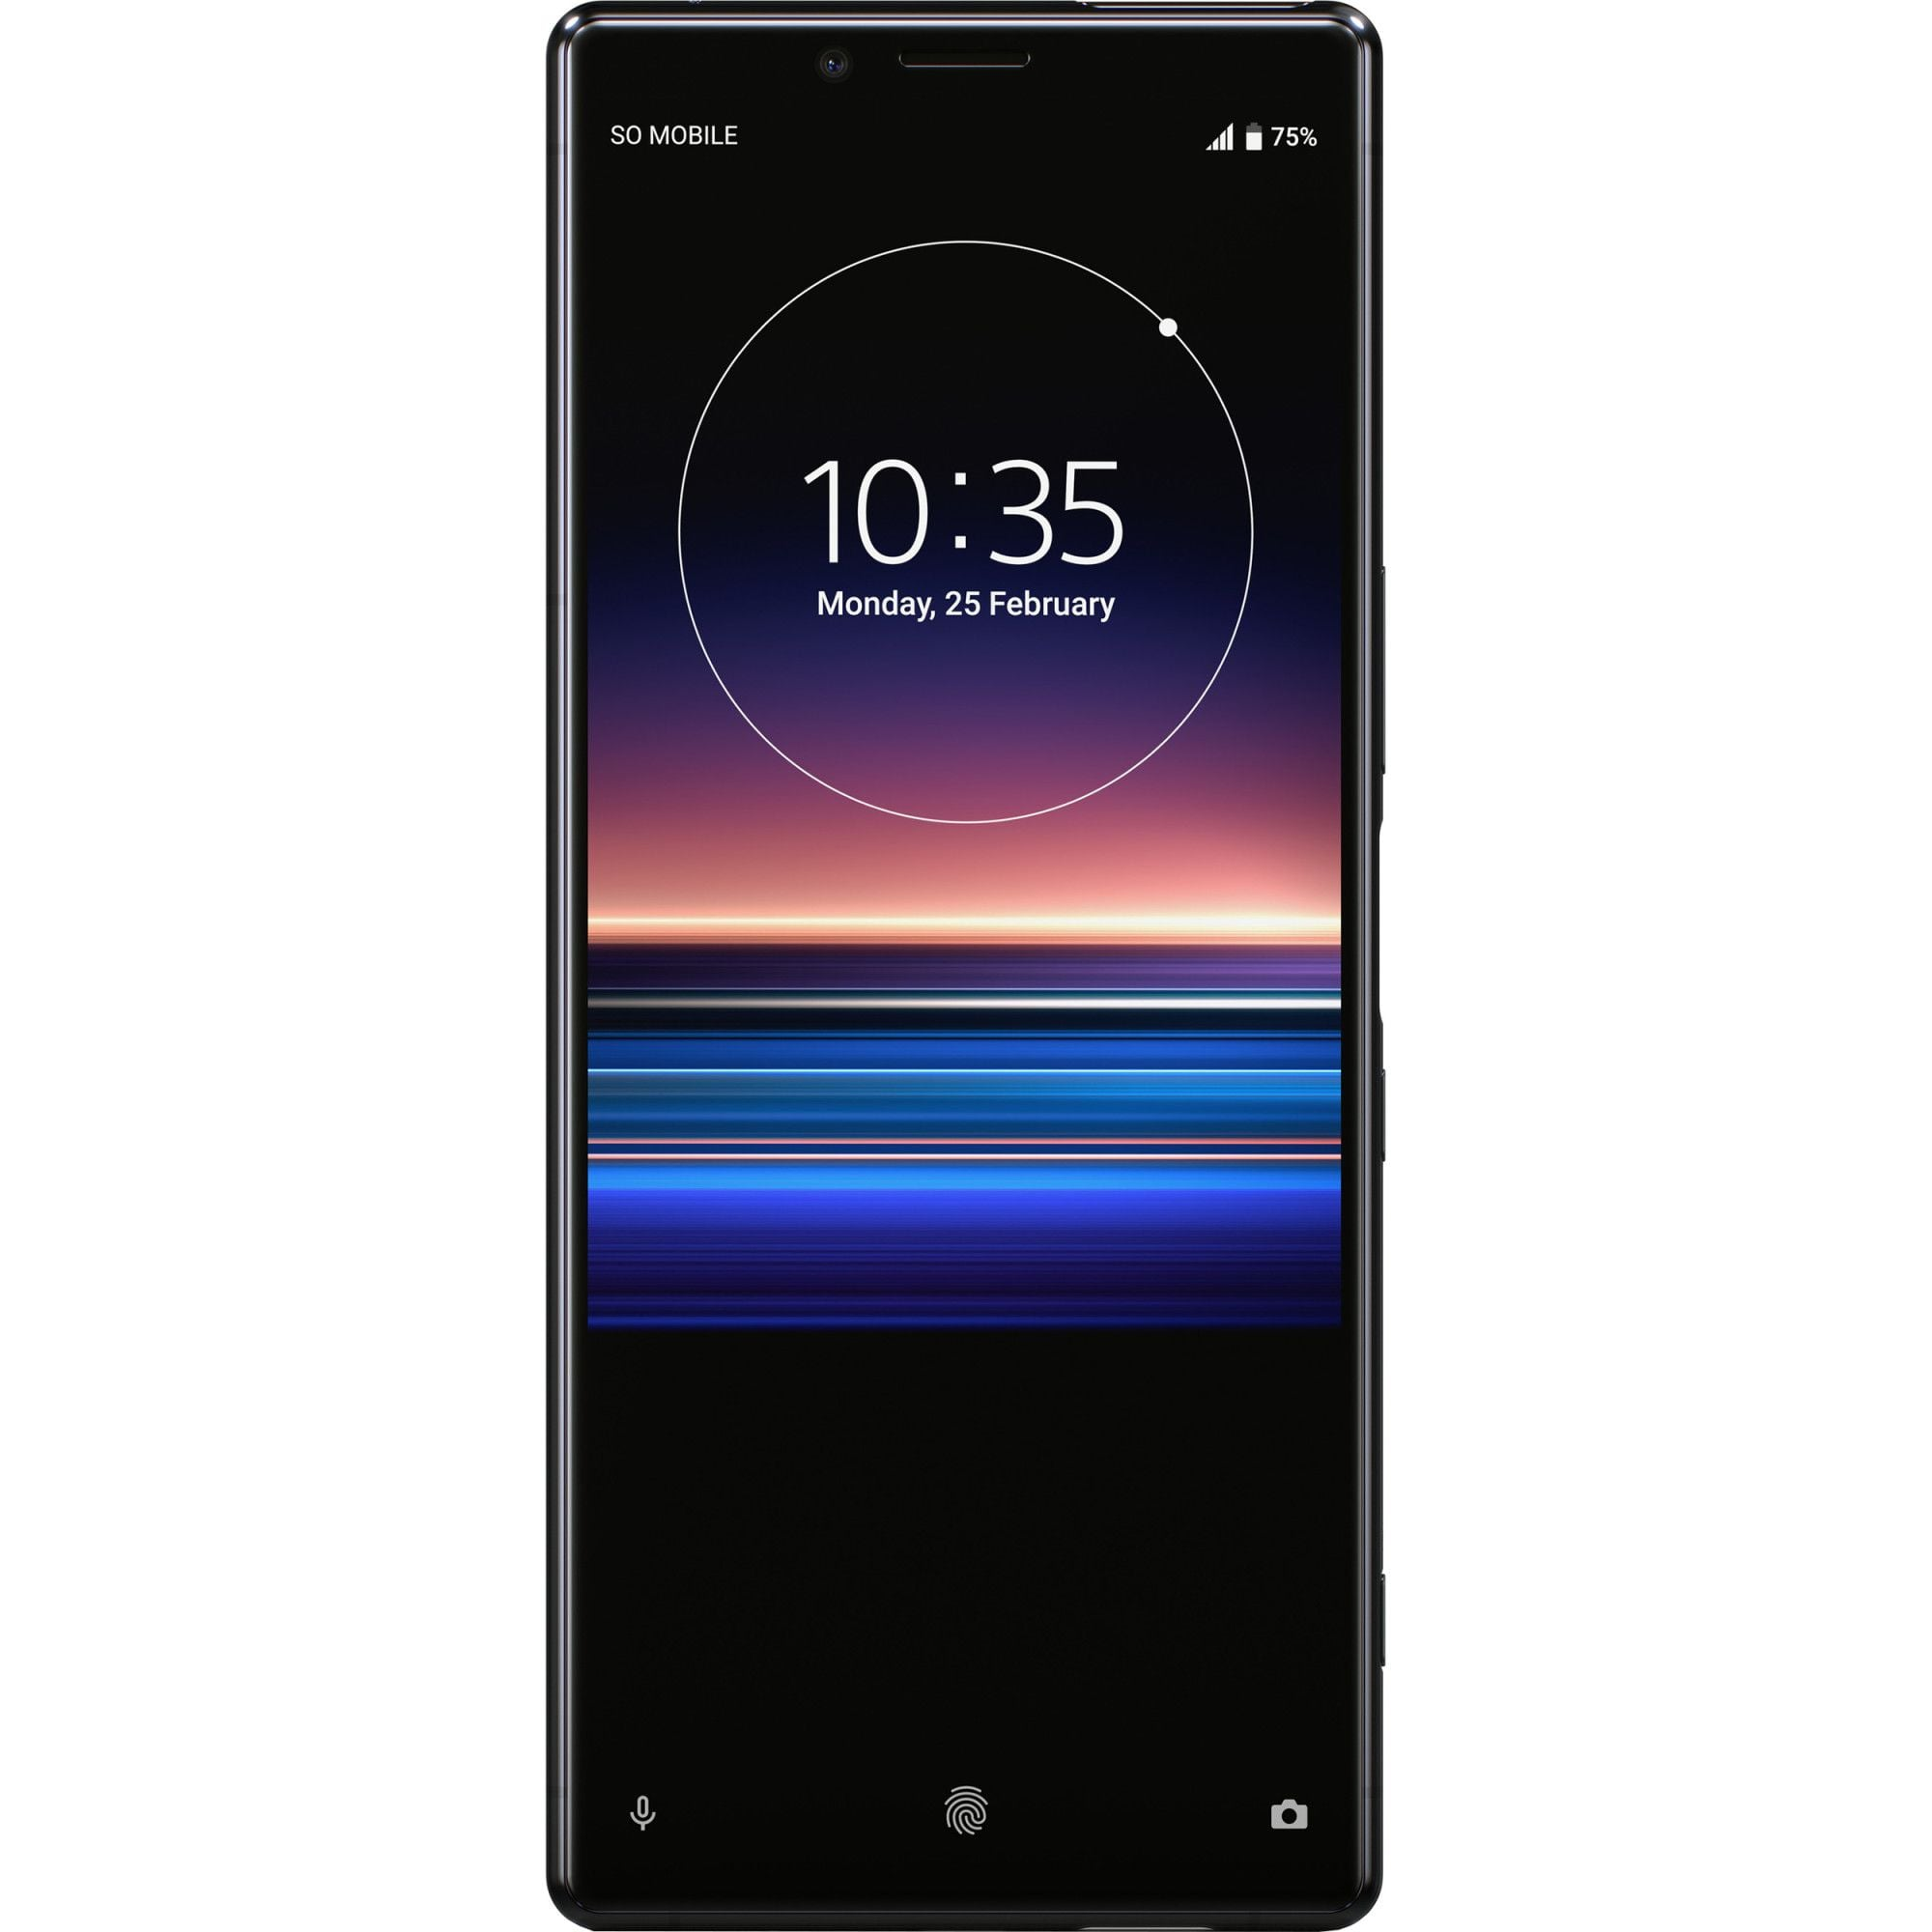 Telefon mobil Sony Xperia 1, Single SIM, 128GB, 6GB RAM, 4G, Black